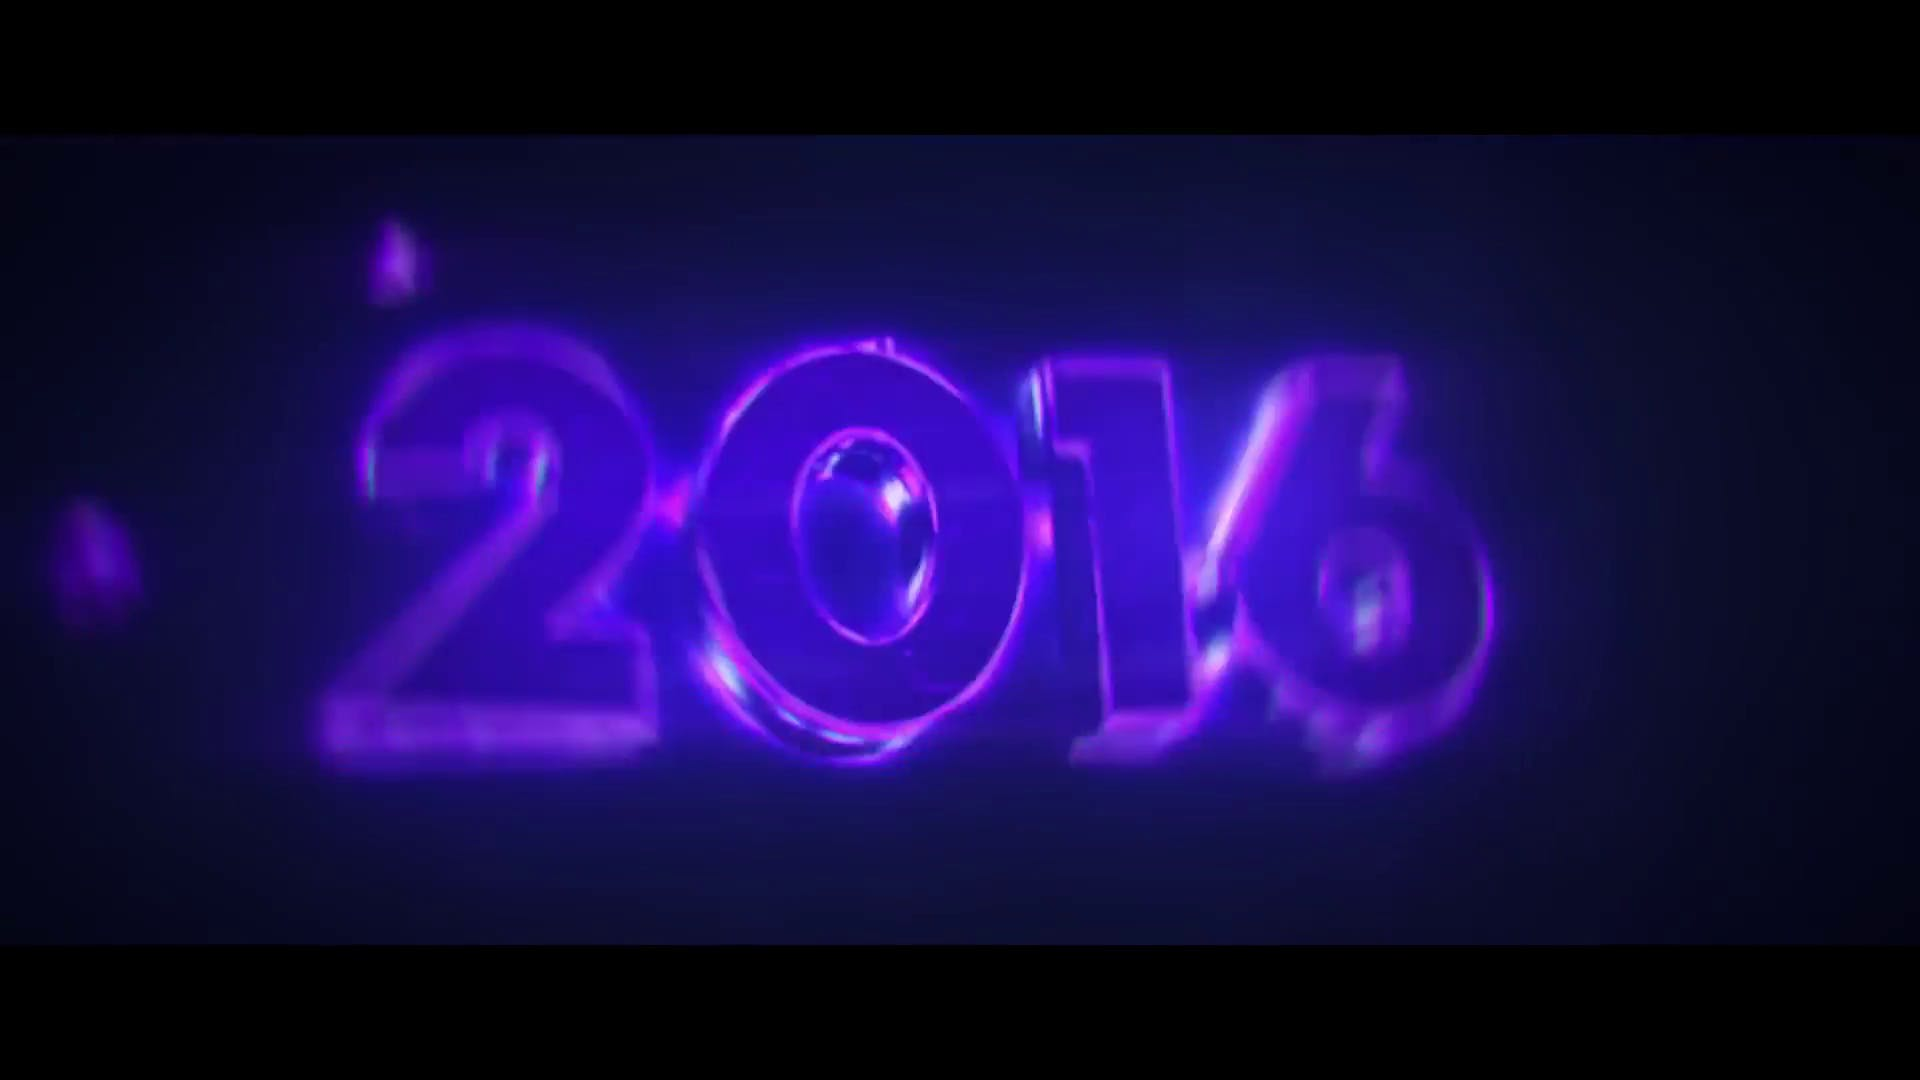 2016 FREE Intro Template Cinema 4D After Effects